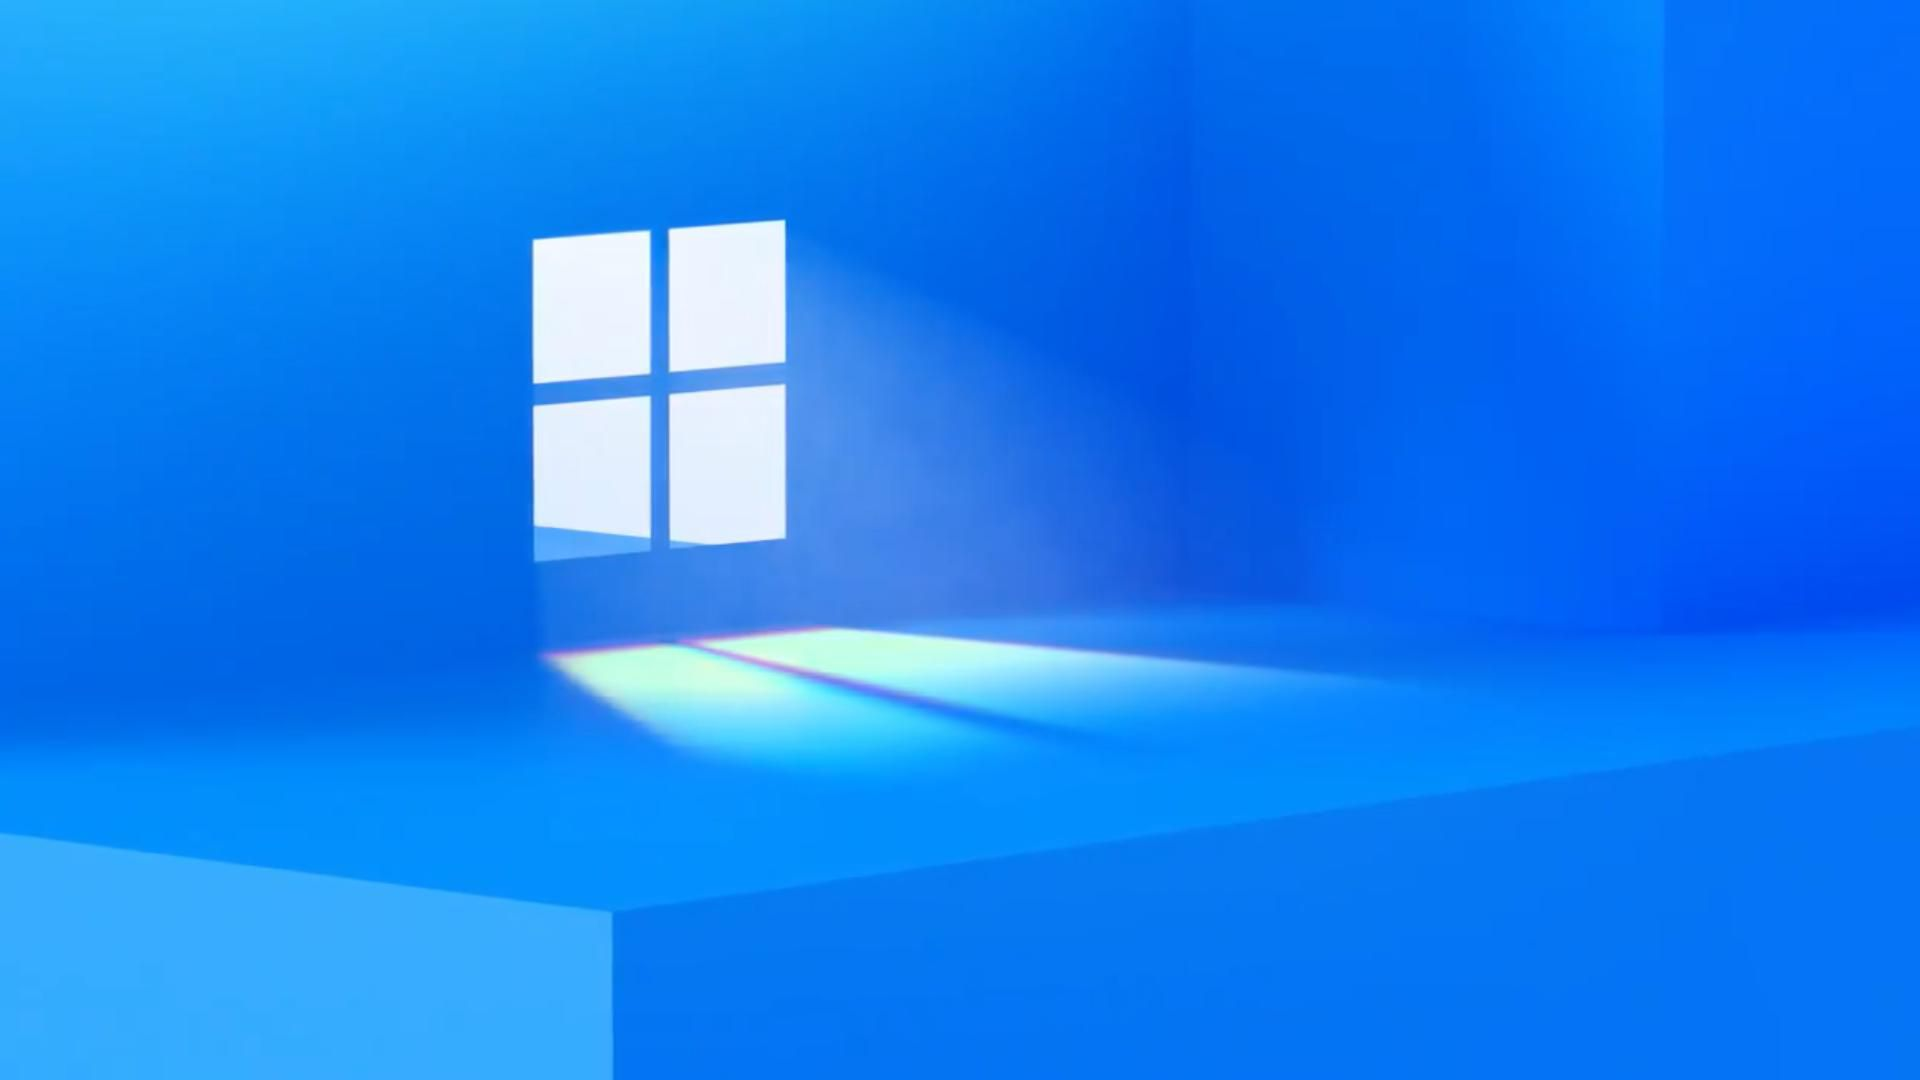 Windows 11: Will It Be A Free Upgrade?